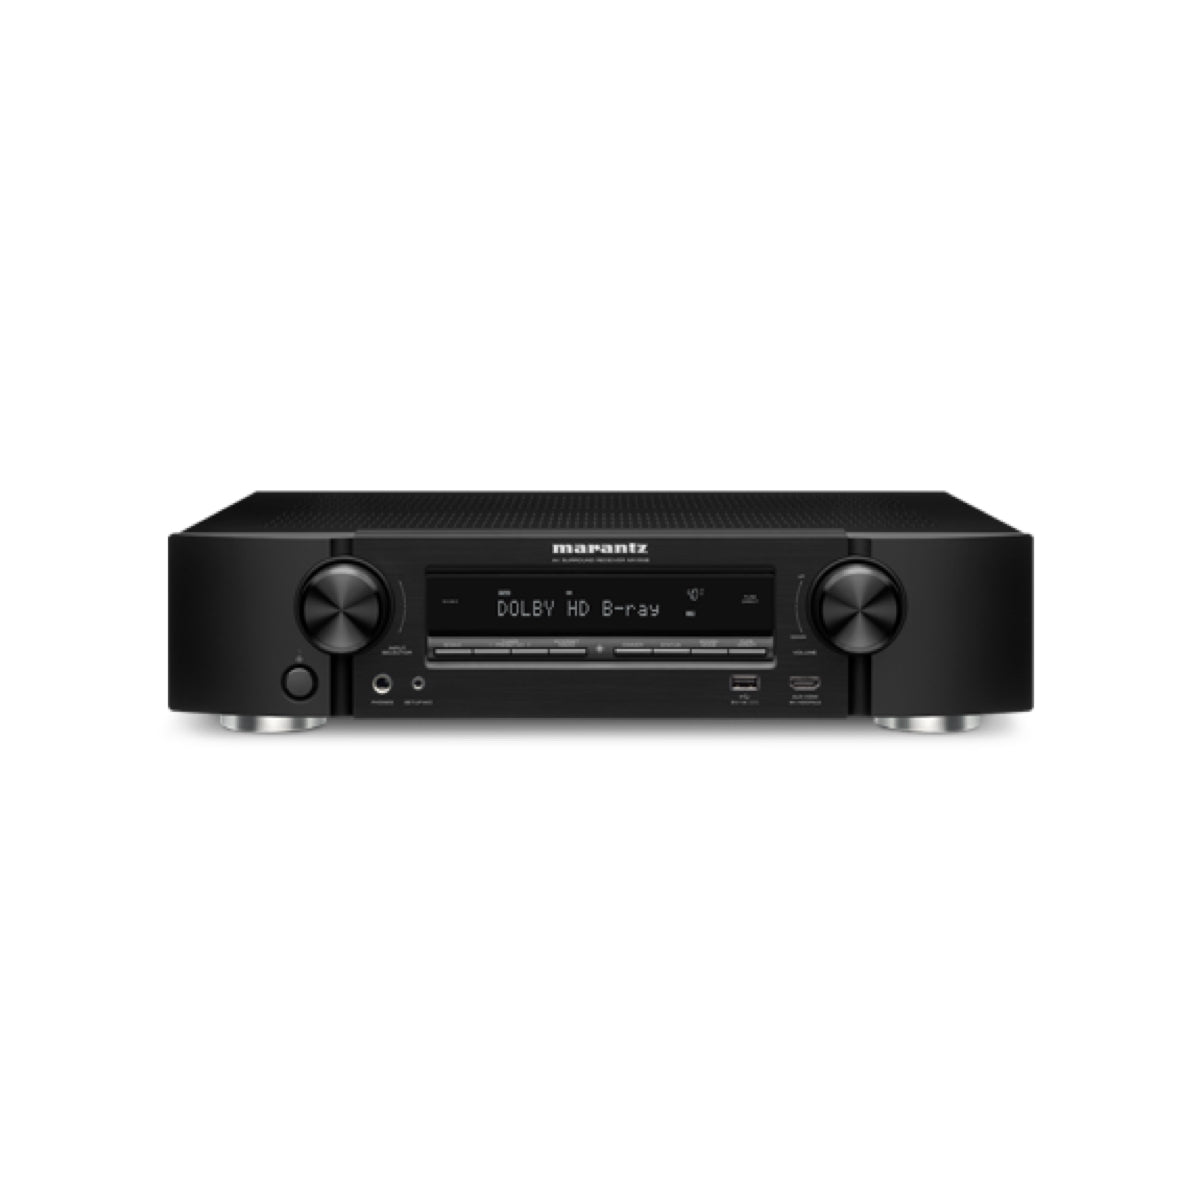 Marantz NR1508 - 5.2 Channel AV Receiver, Marantz, AV Receiver - AVStore.in